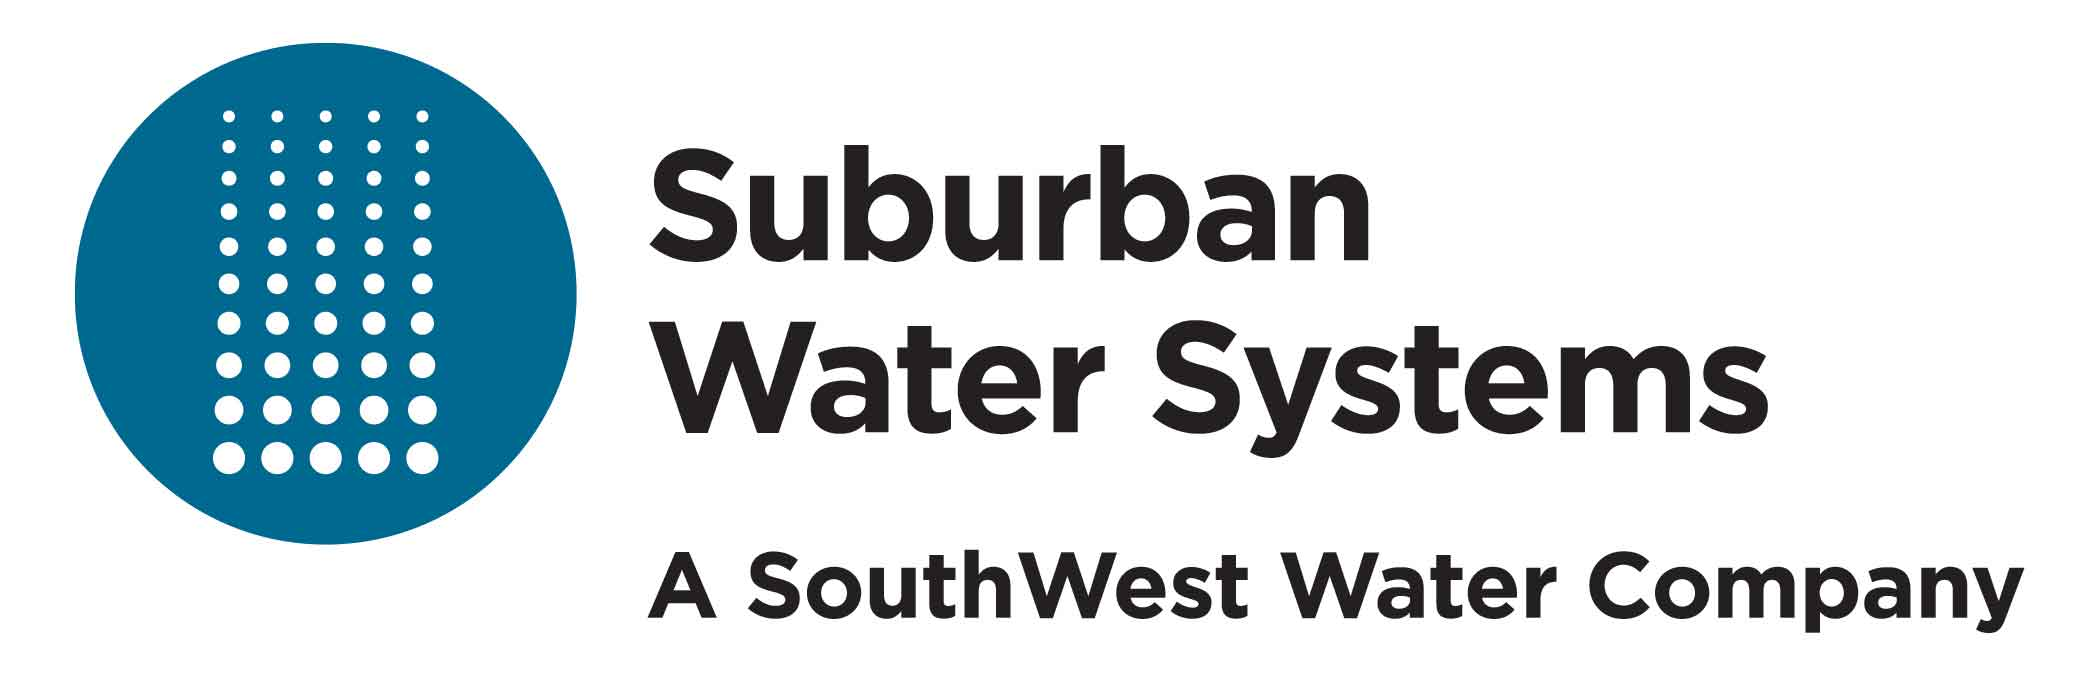 Silver - Suburban Water Systems - Logo